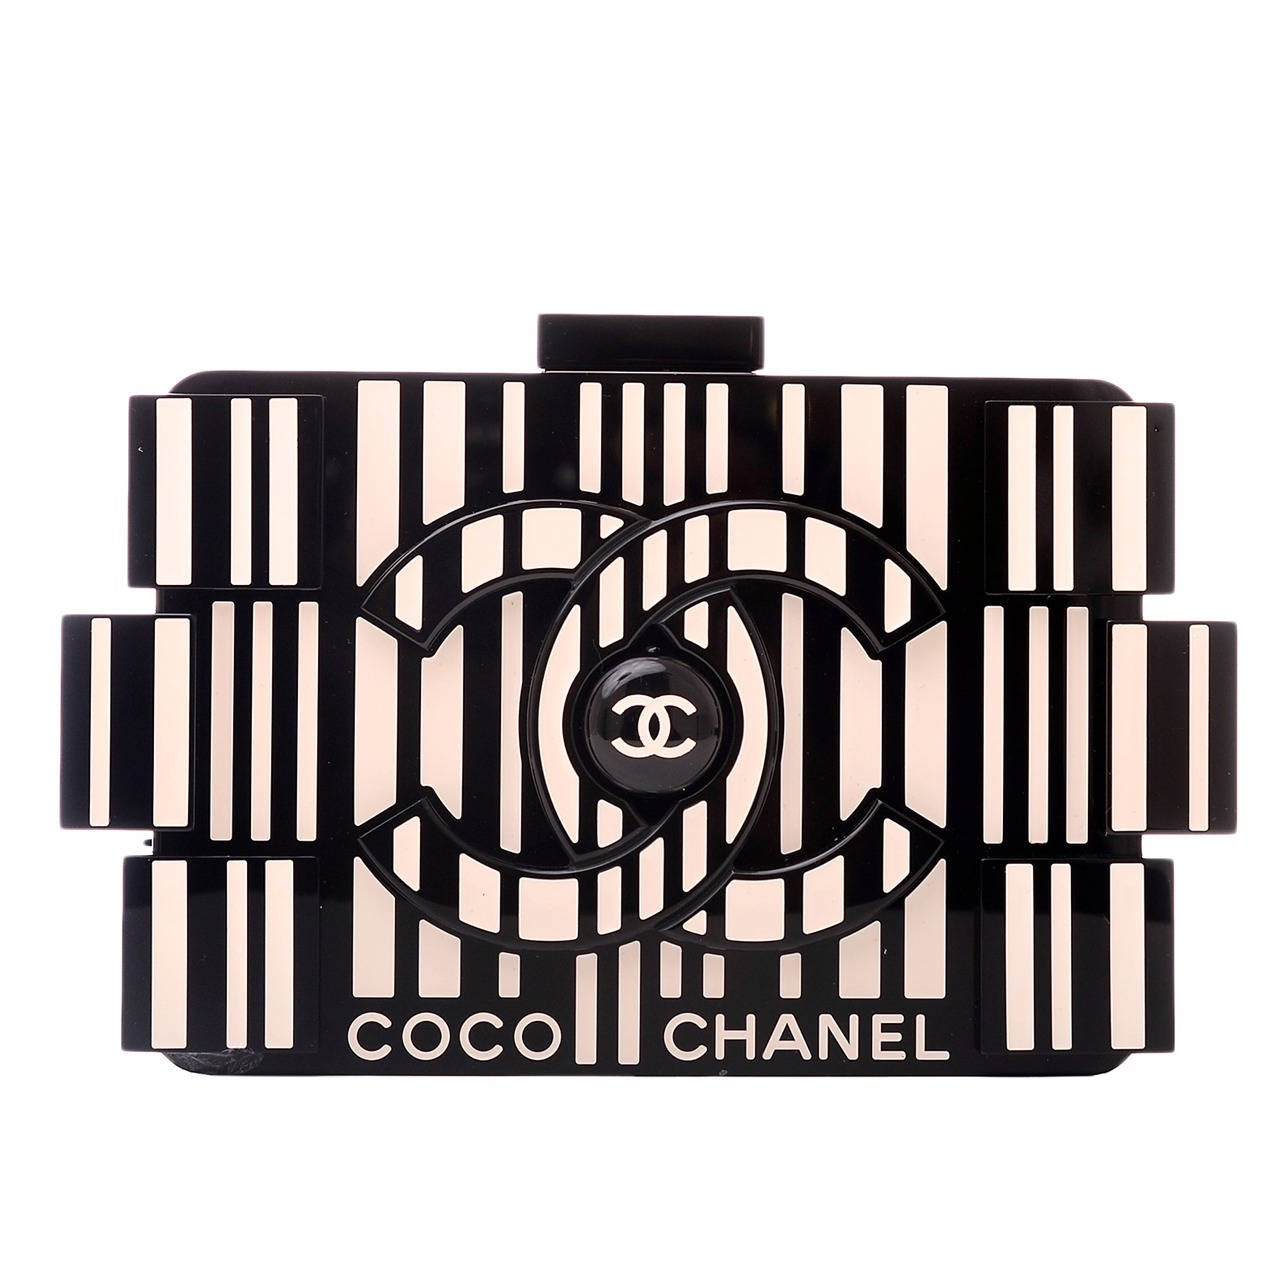 Chanel Limited Edition Op-Art Black And White Lego Boy Minaudiere For Sale